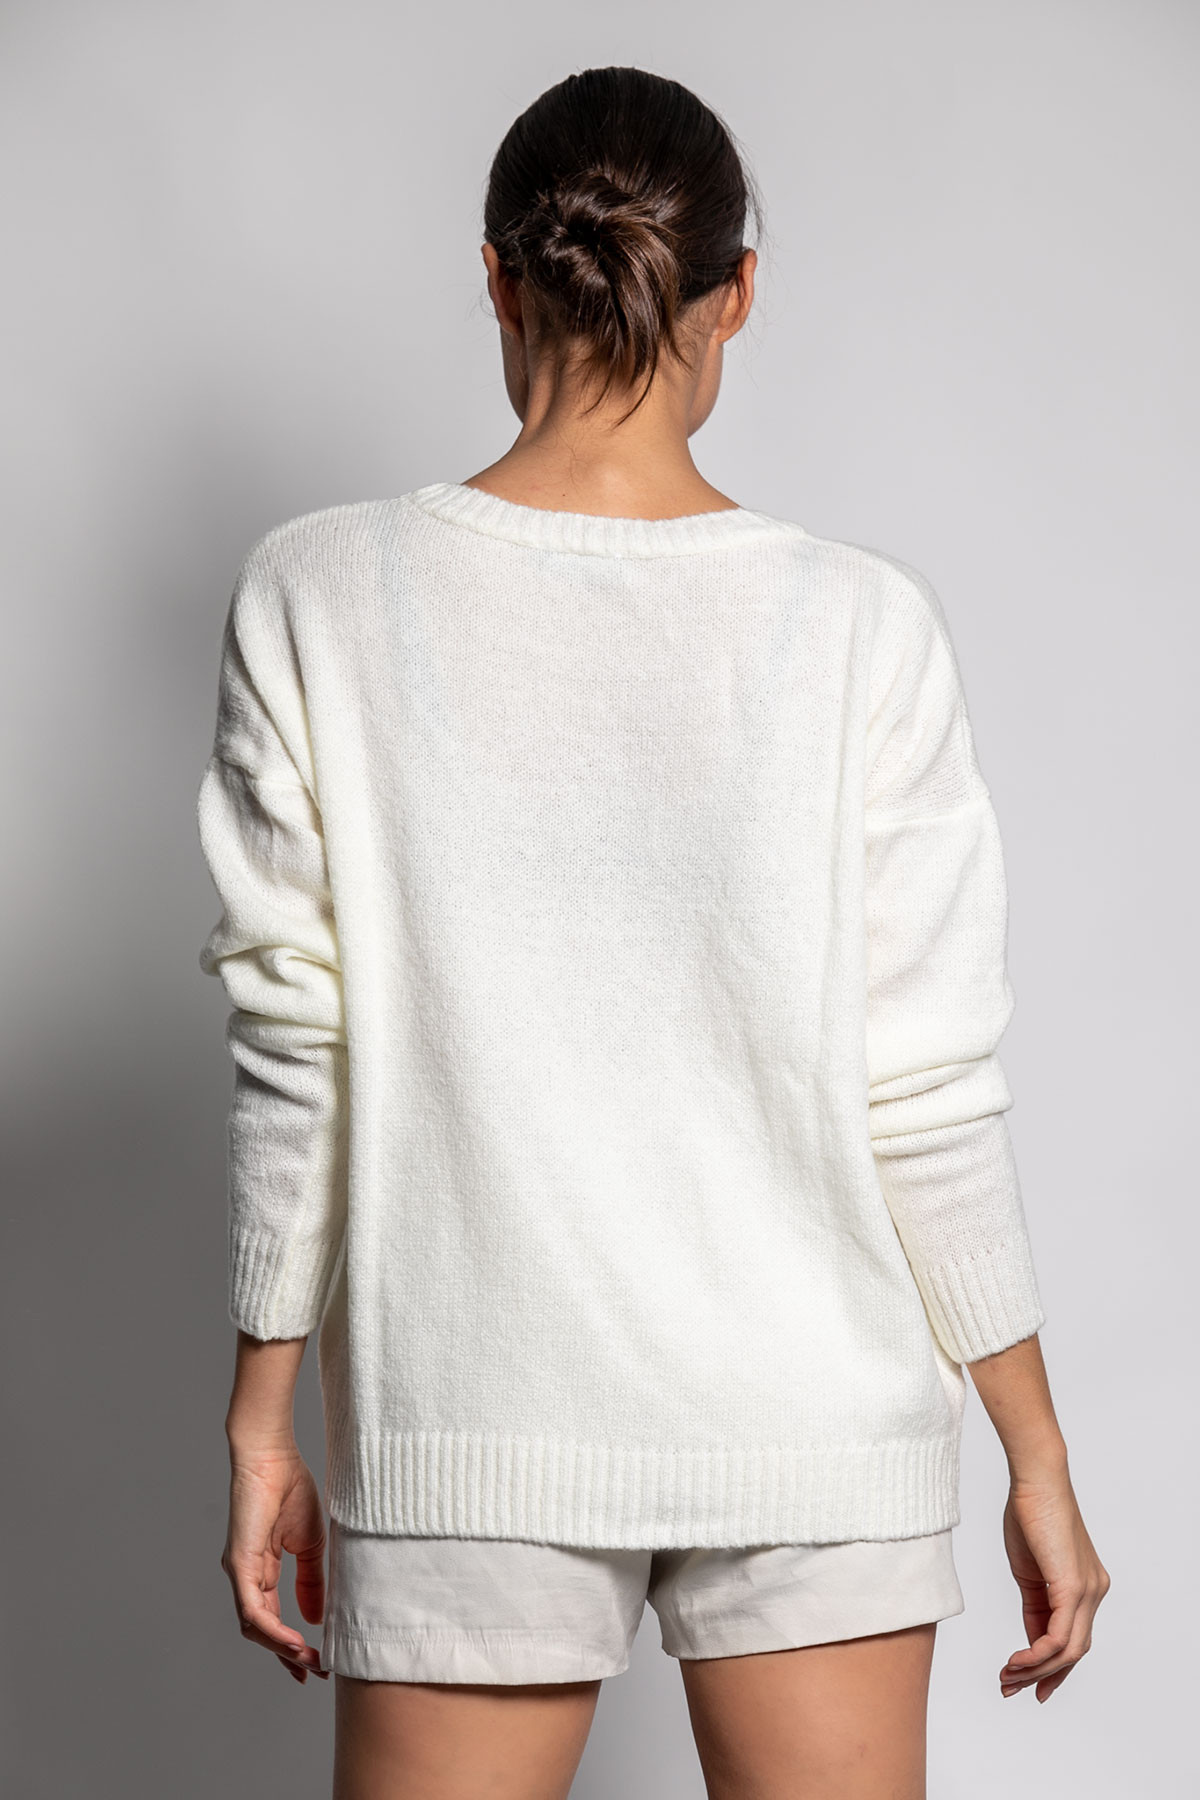 OFF WHITE ROUND NECK SWEATER